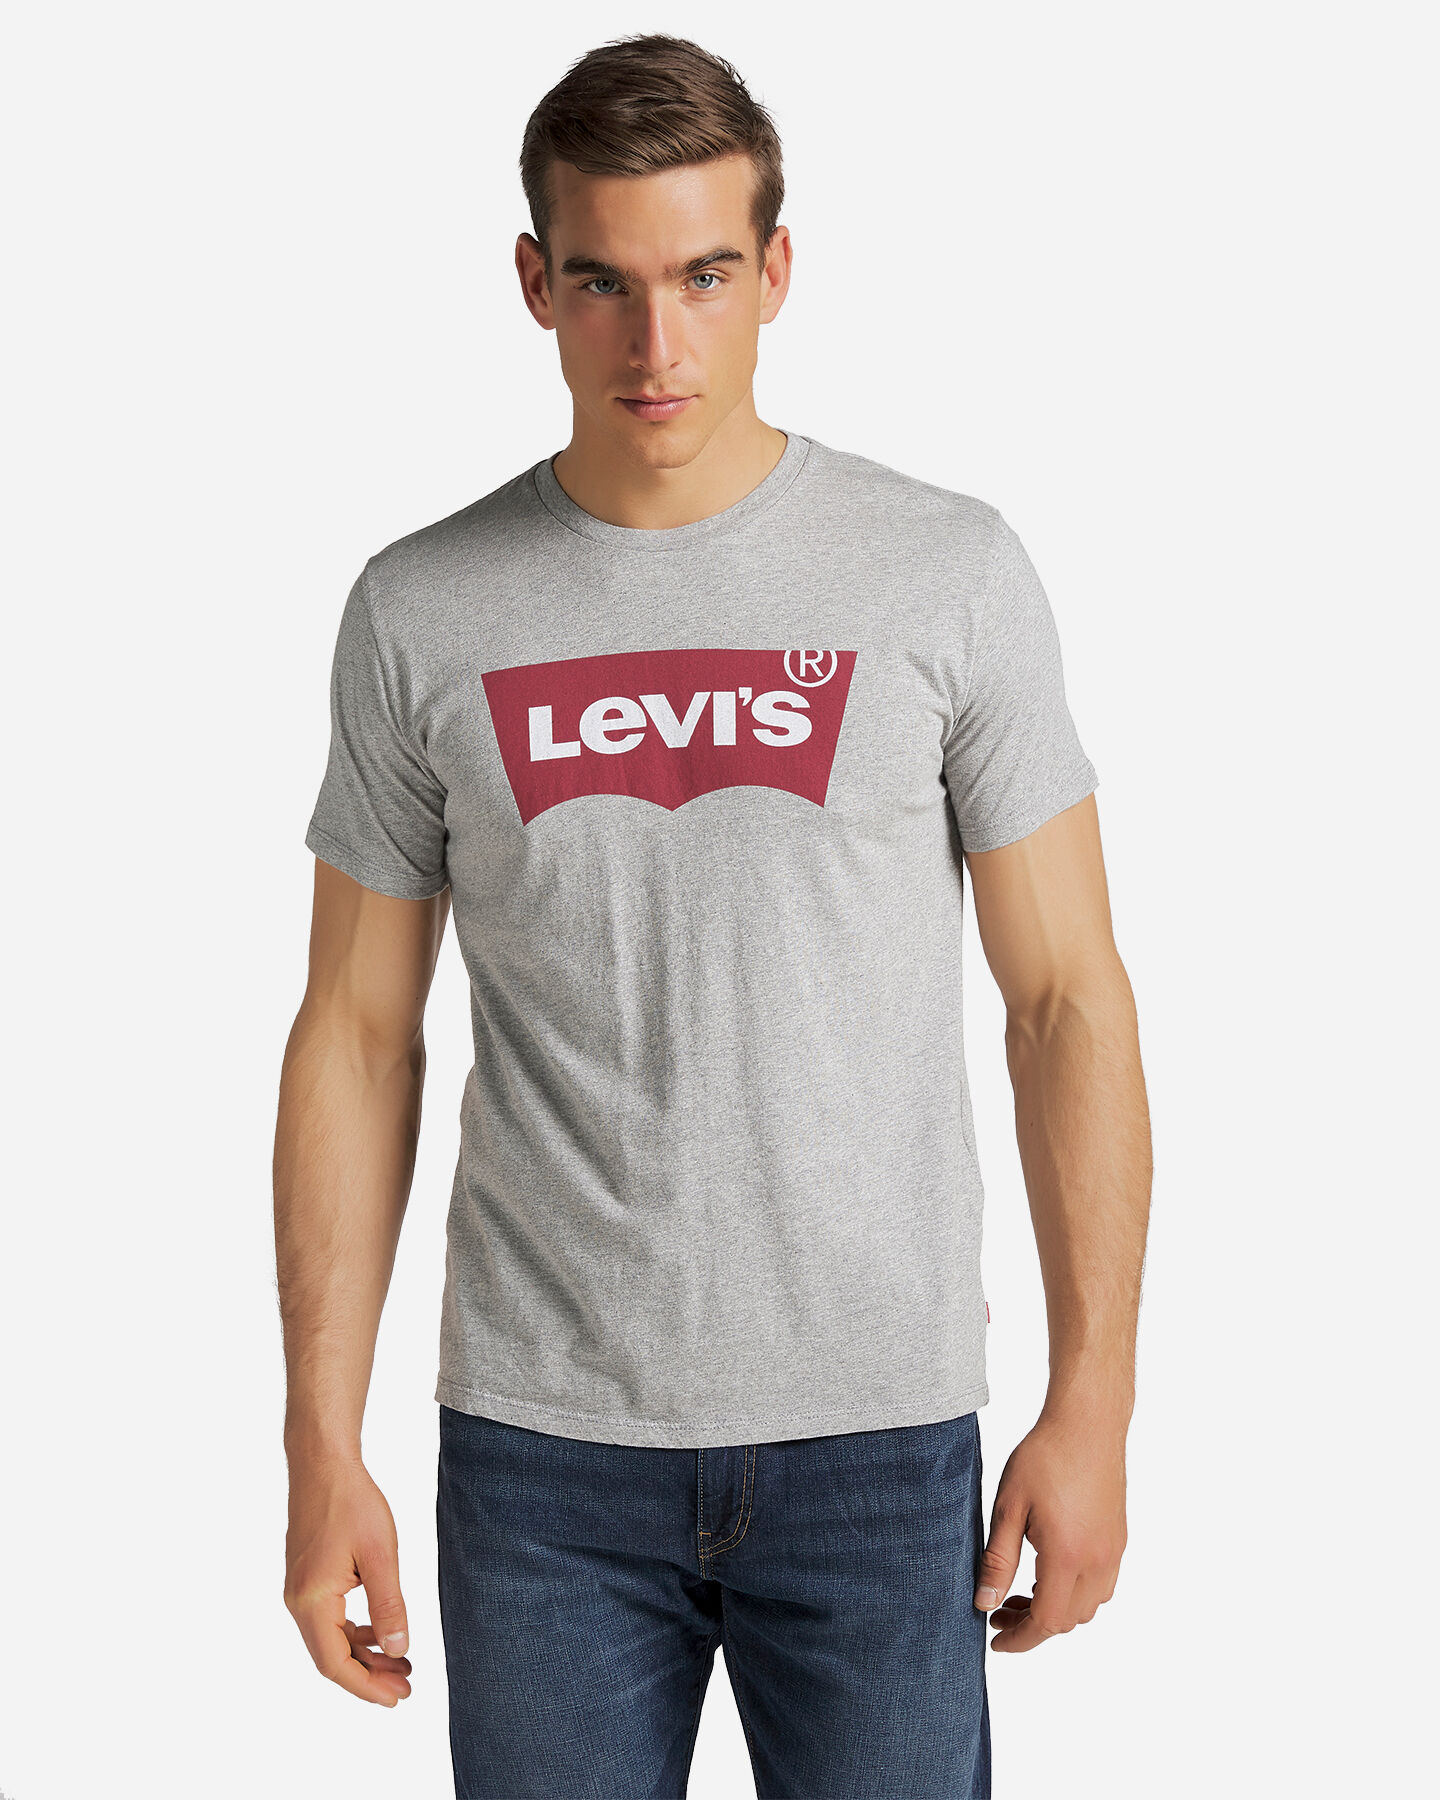 T-Shirt LEVI'S HOUSEMARK M S4064491 scatto 0